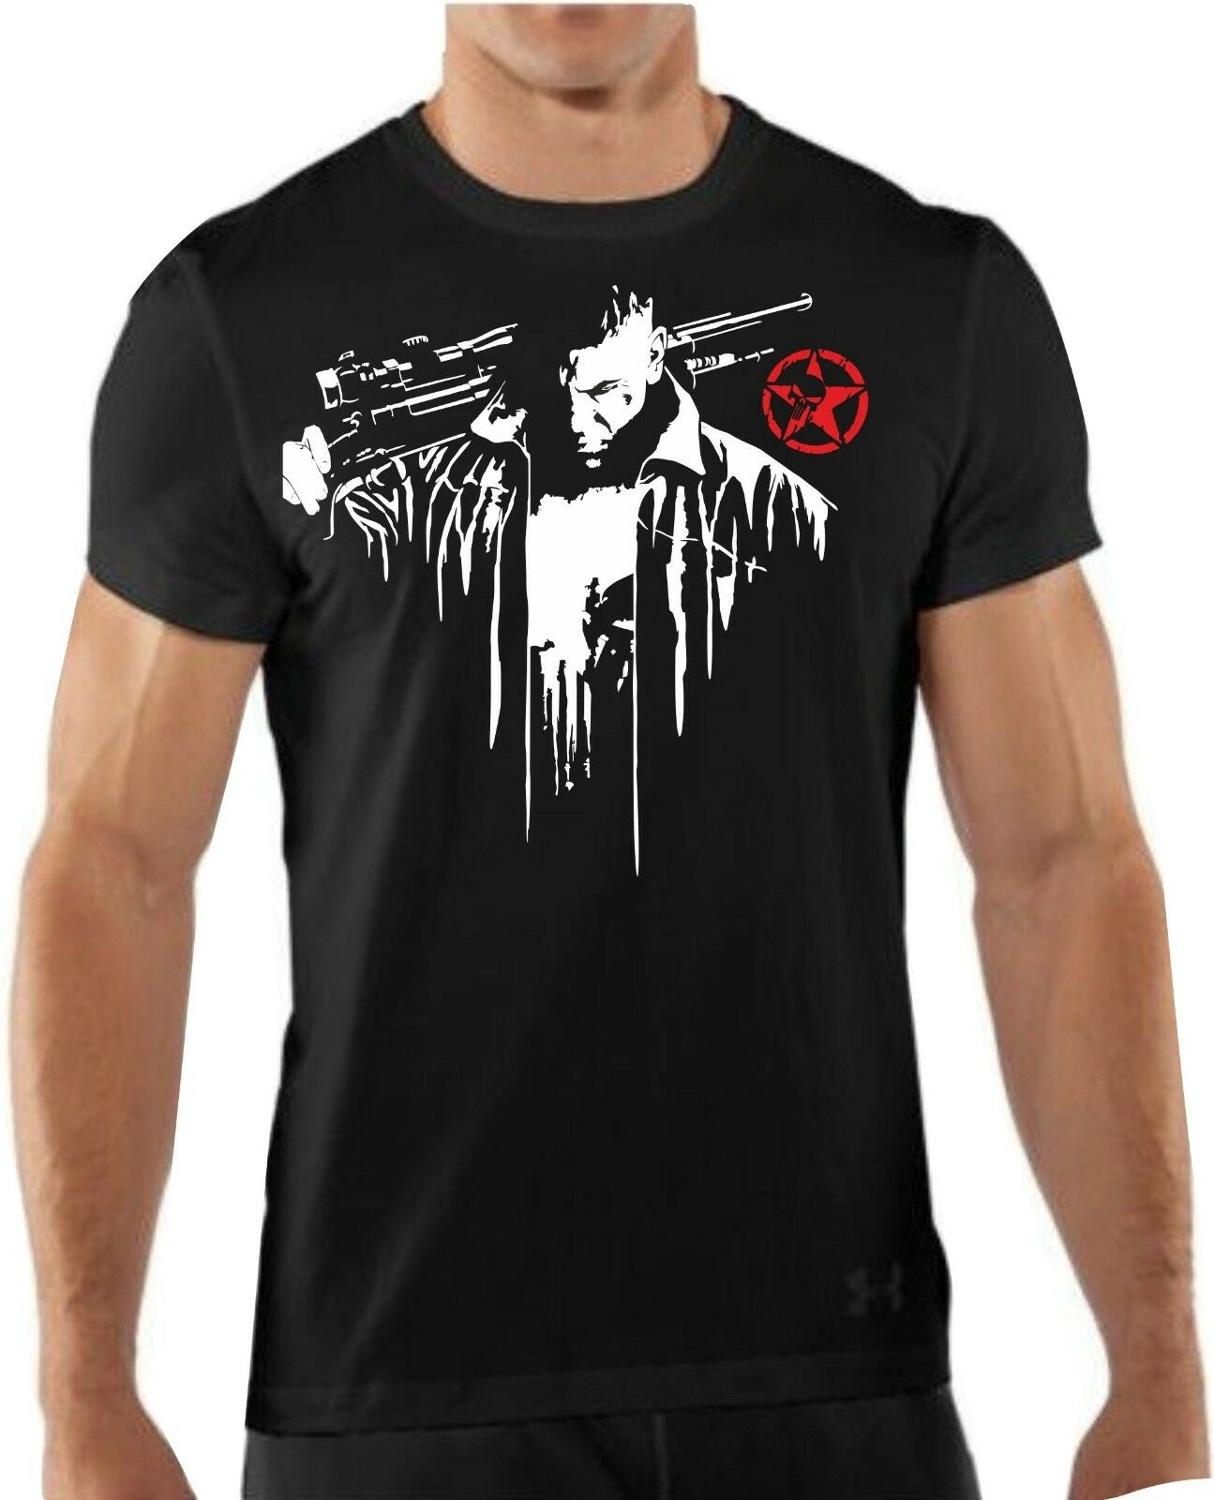 T-Shirt Knit Skull T-Shirt Fashion The Punisher Skul Novelty Mens T-Shirts for Men 3D Printed Short Sleeve Men'S Tops T Shirt